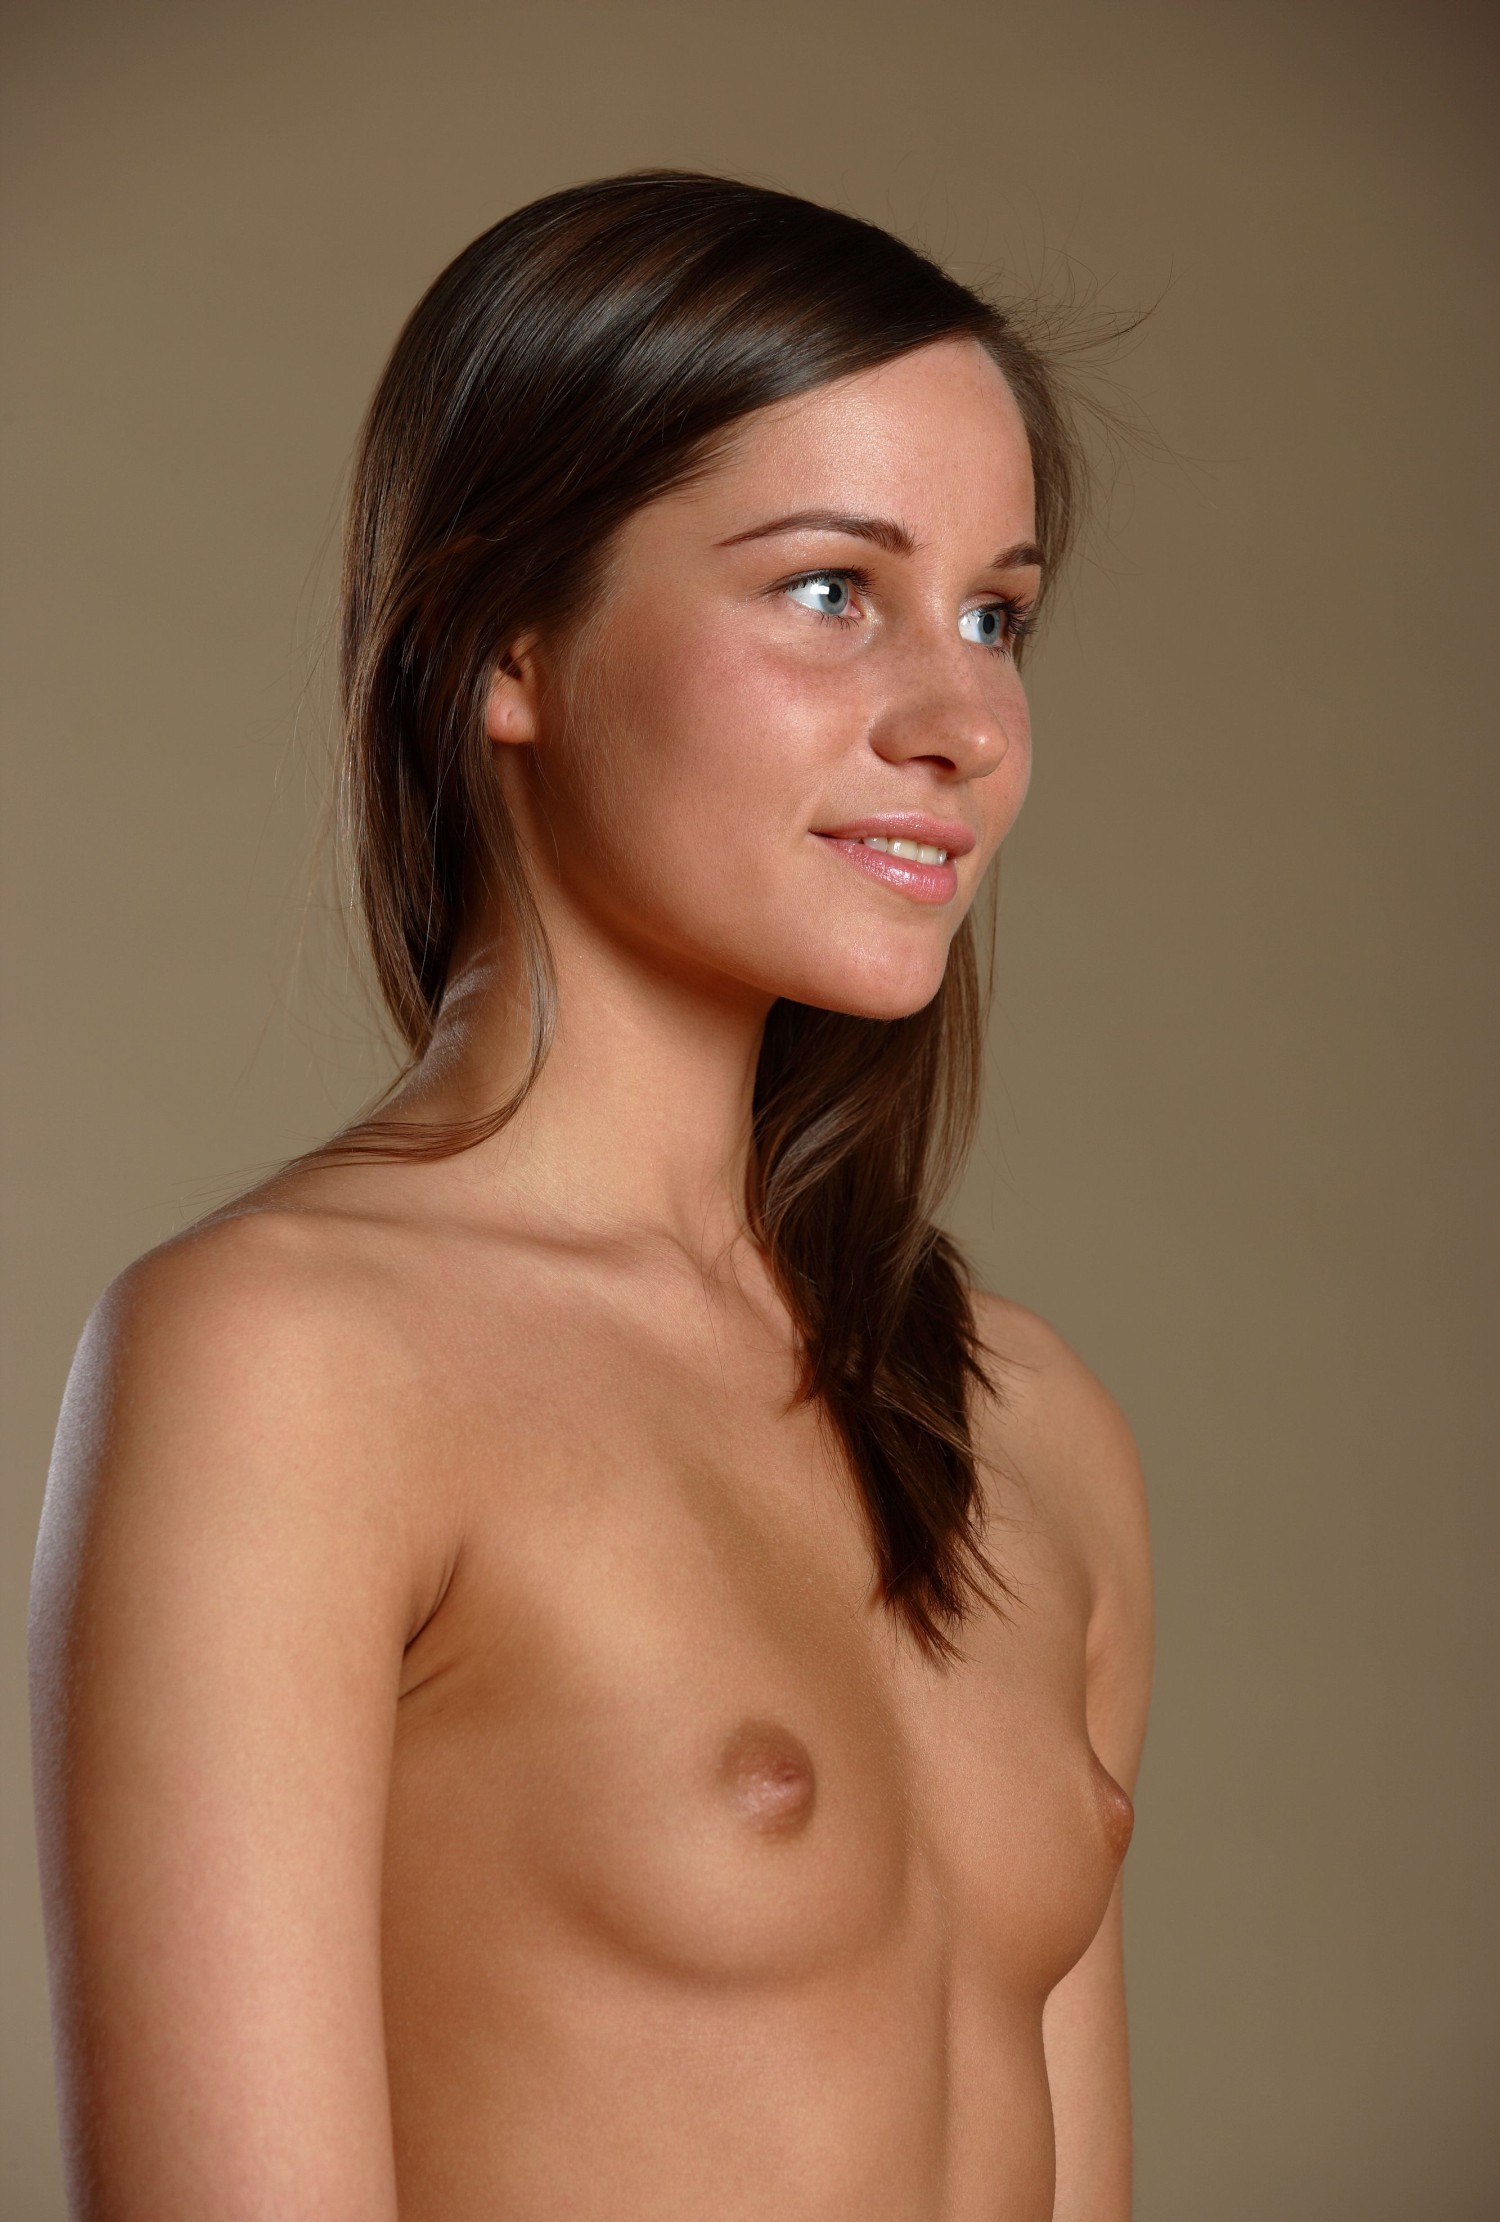 charmed girls hot nude